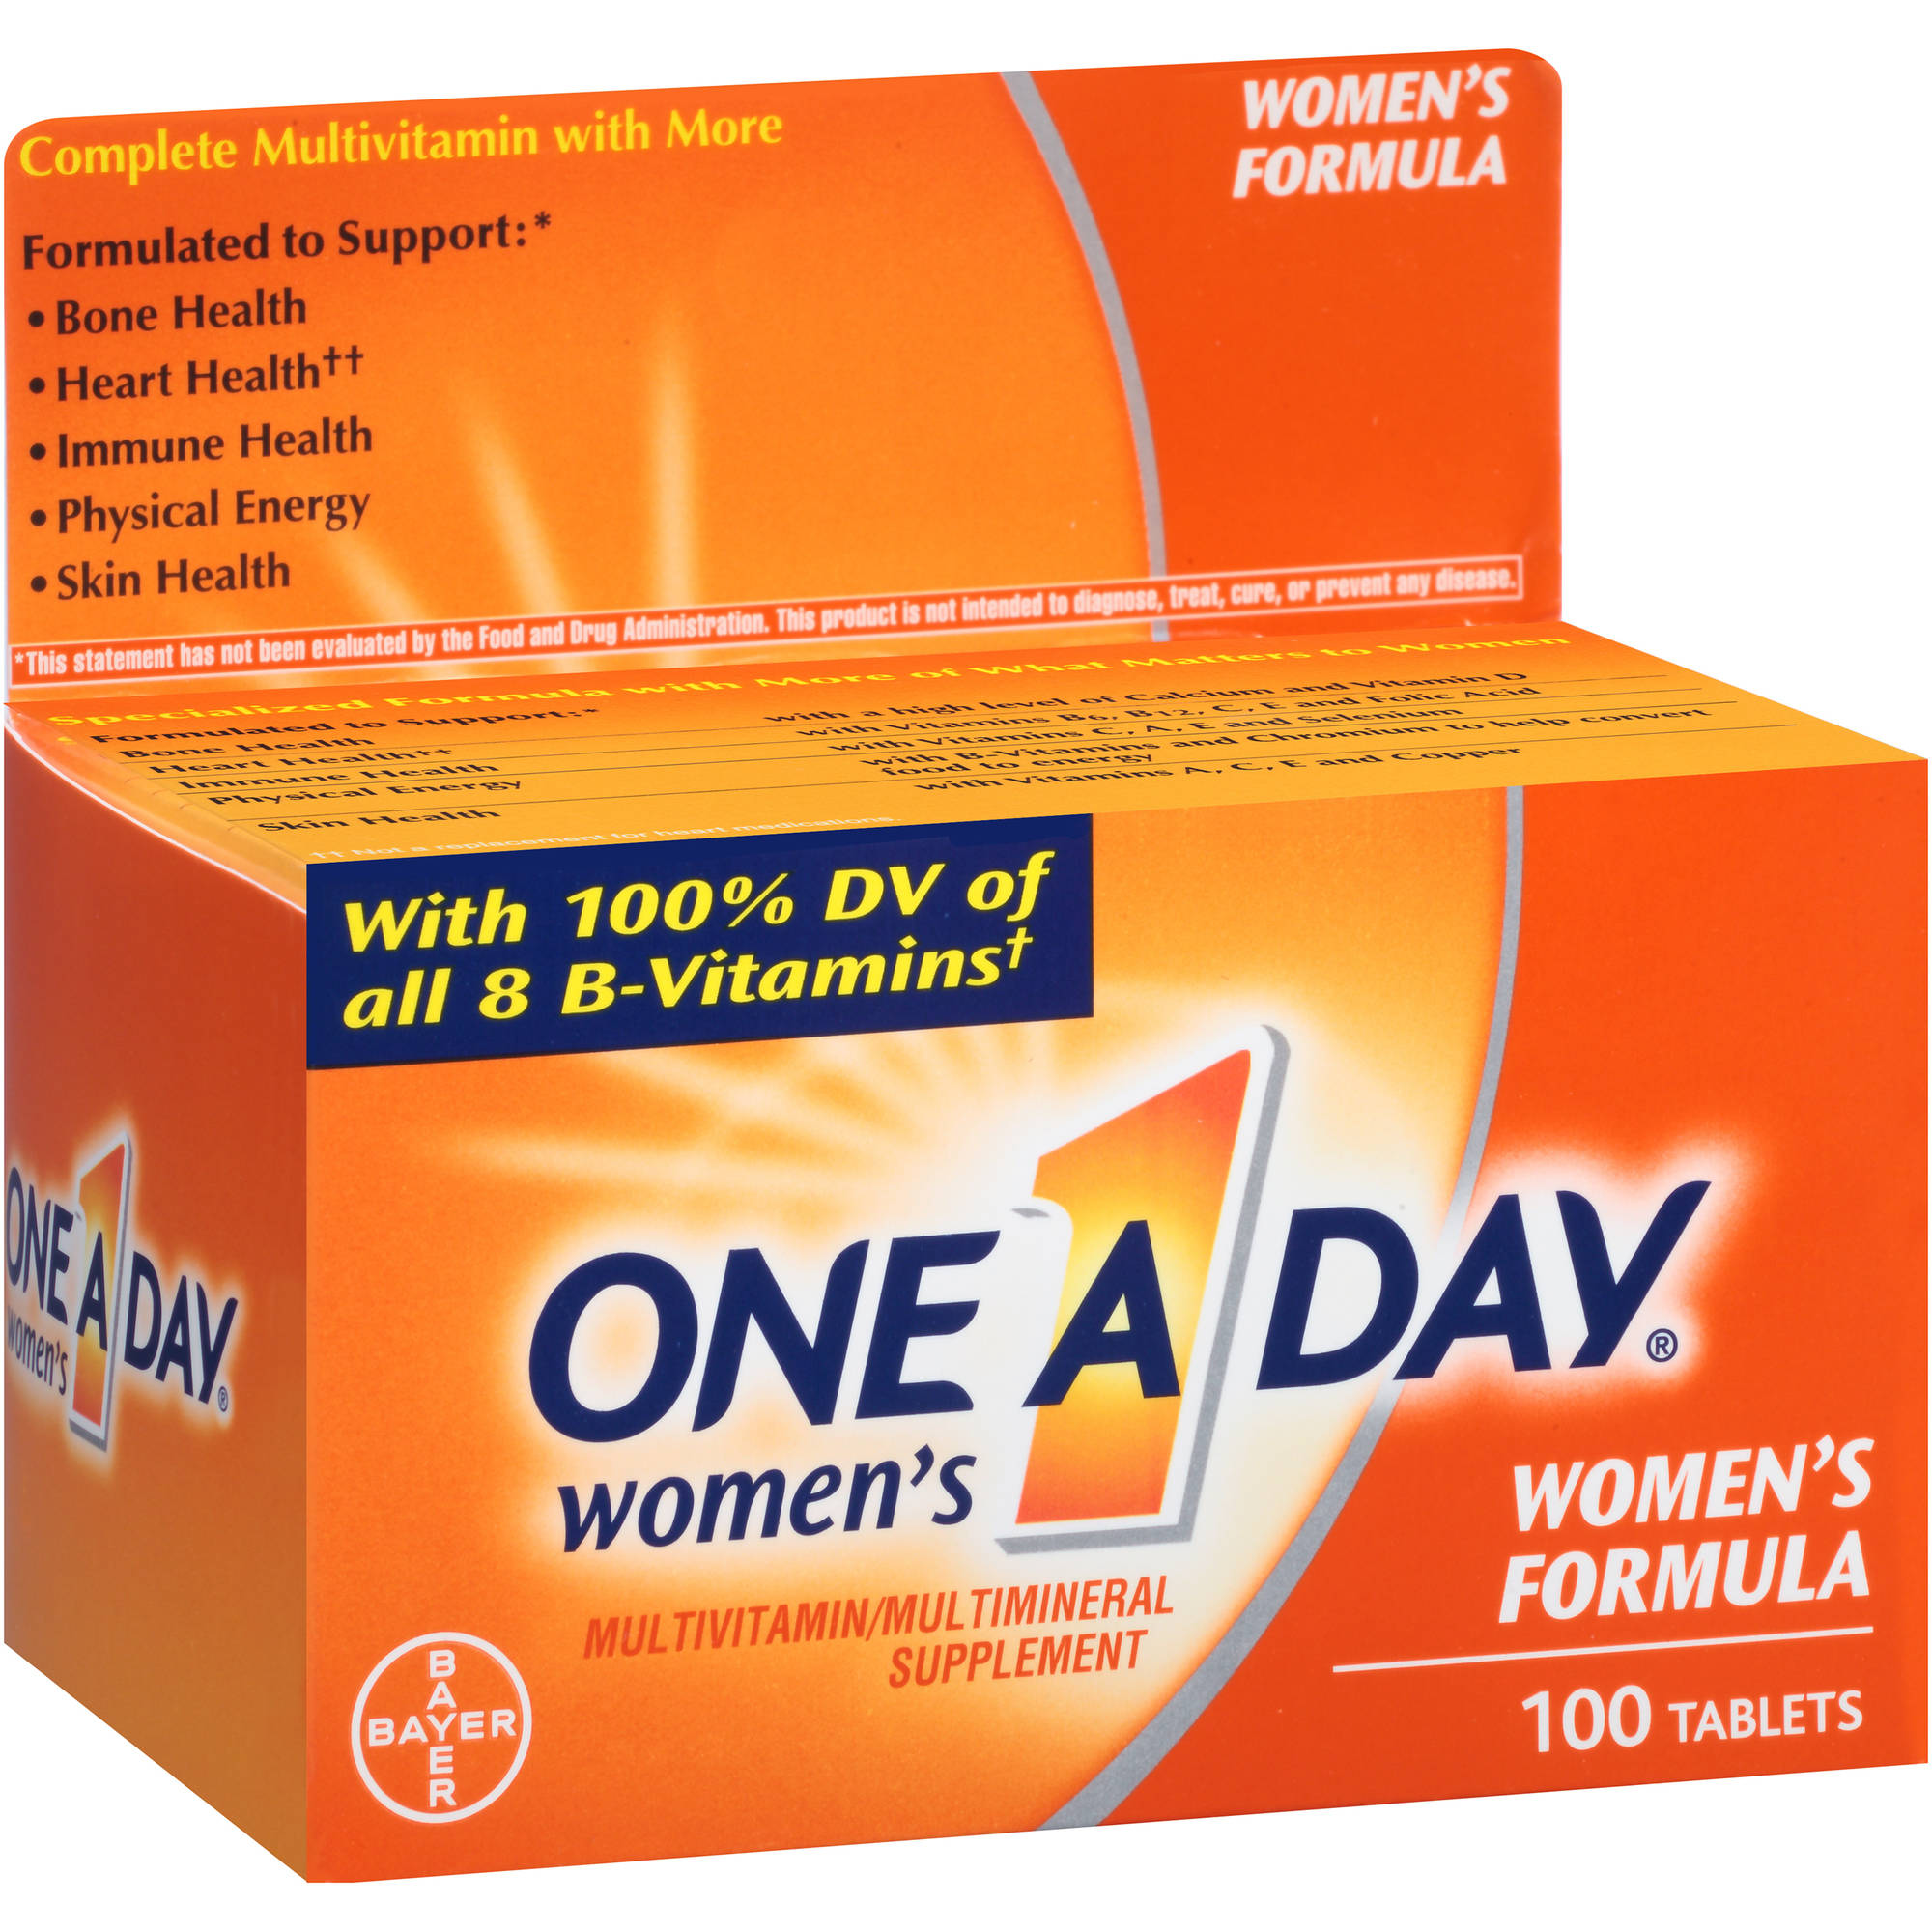 One A Day Women's Multivitamin/Multimineral Supplement Tablets, 100 count